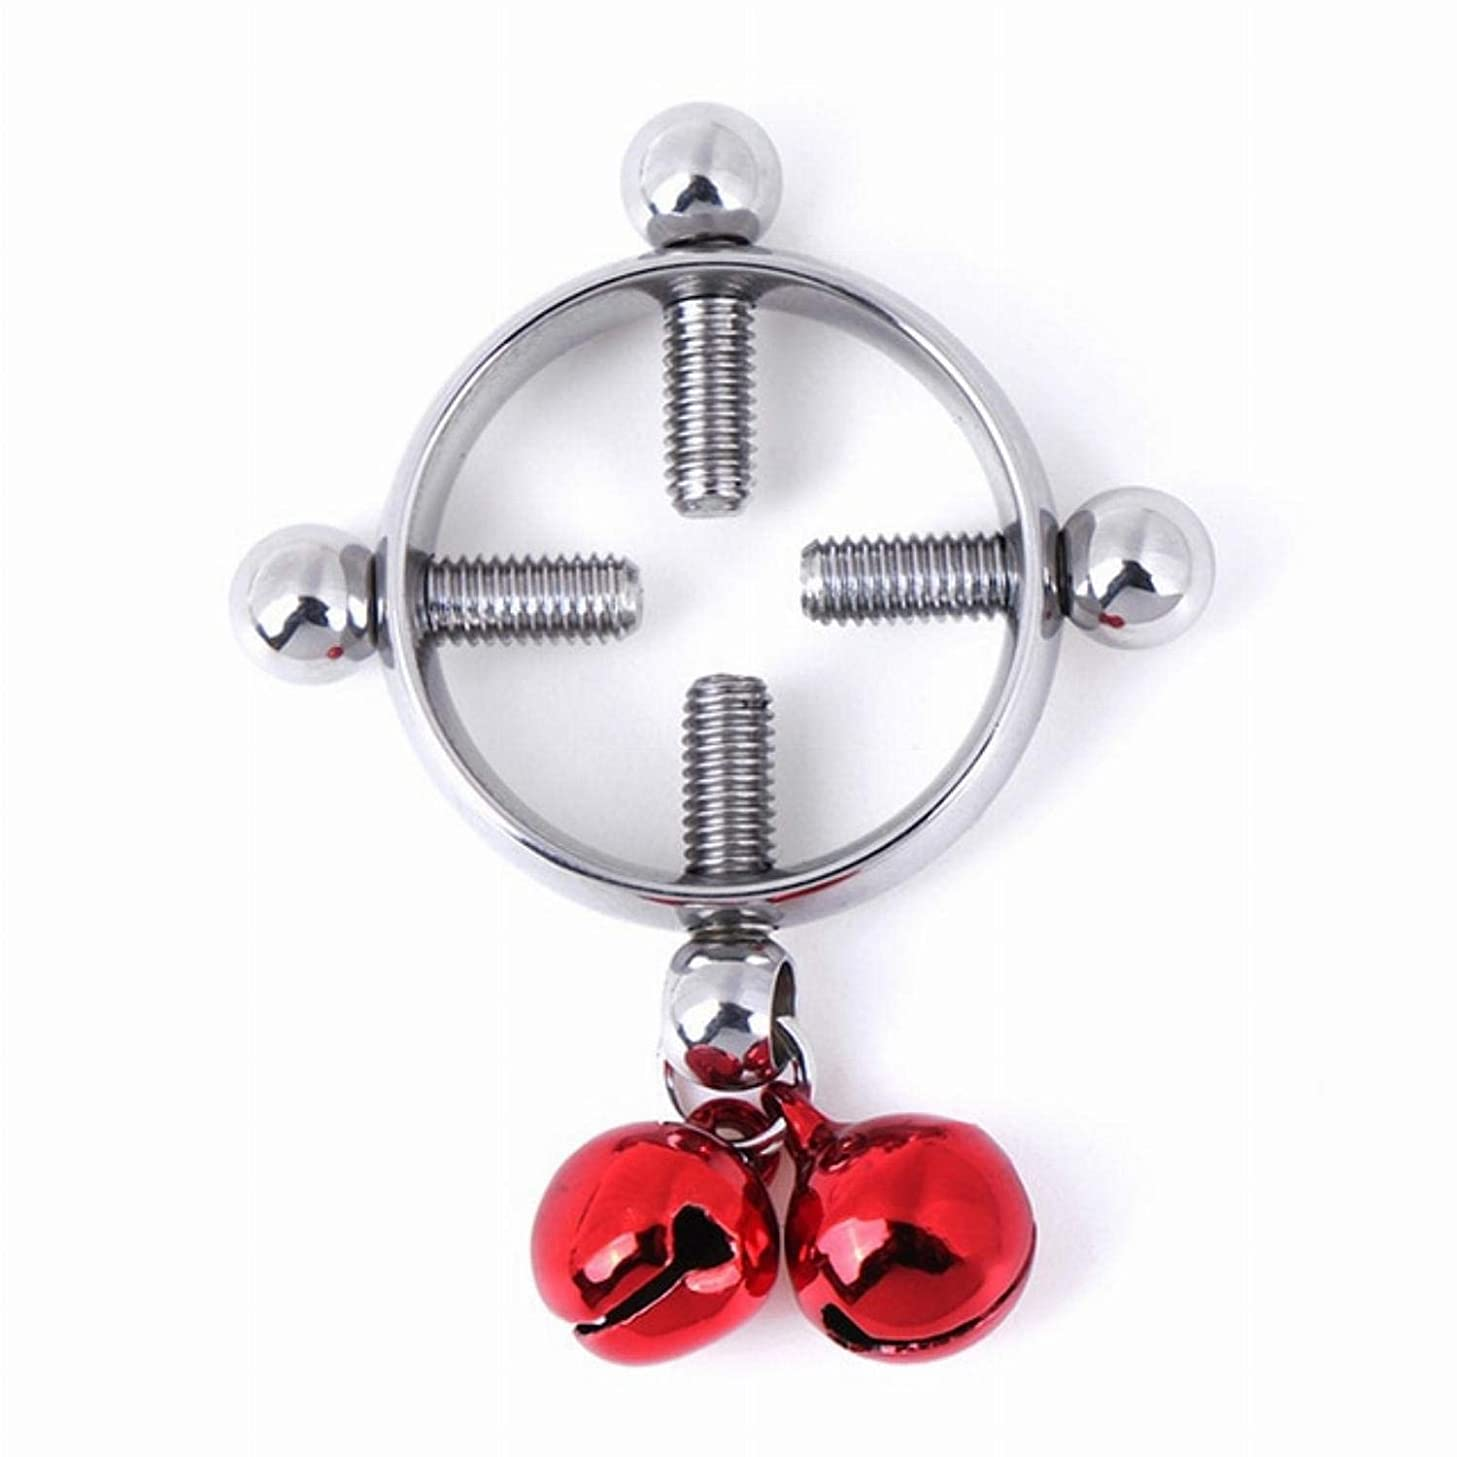 Bihghui Shirt 1 Pair Eroticie Nipple Clamps Sex Toys for Women Stainless Steel Breast Stimulator Nipple Ring Shield Body Piercing As Photo